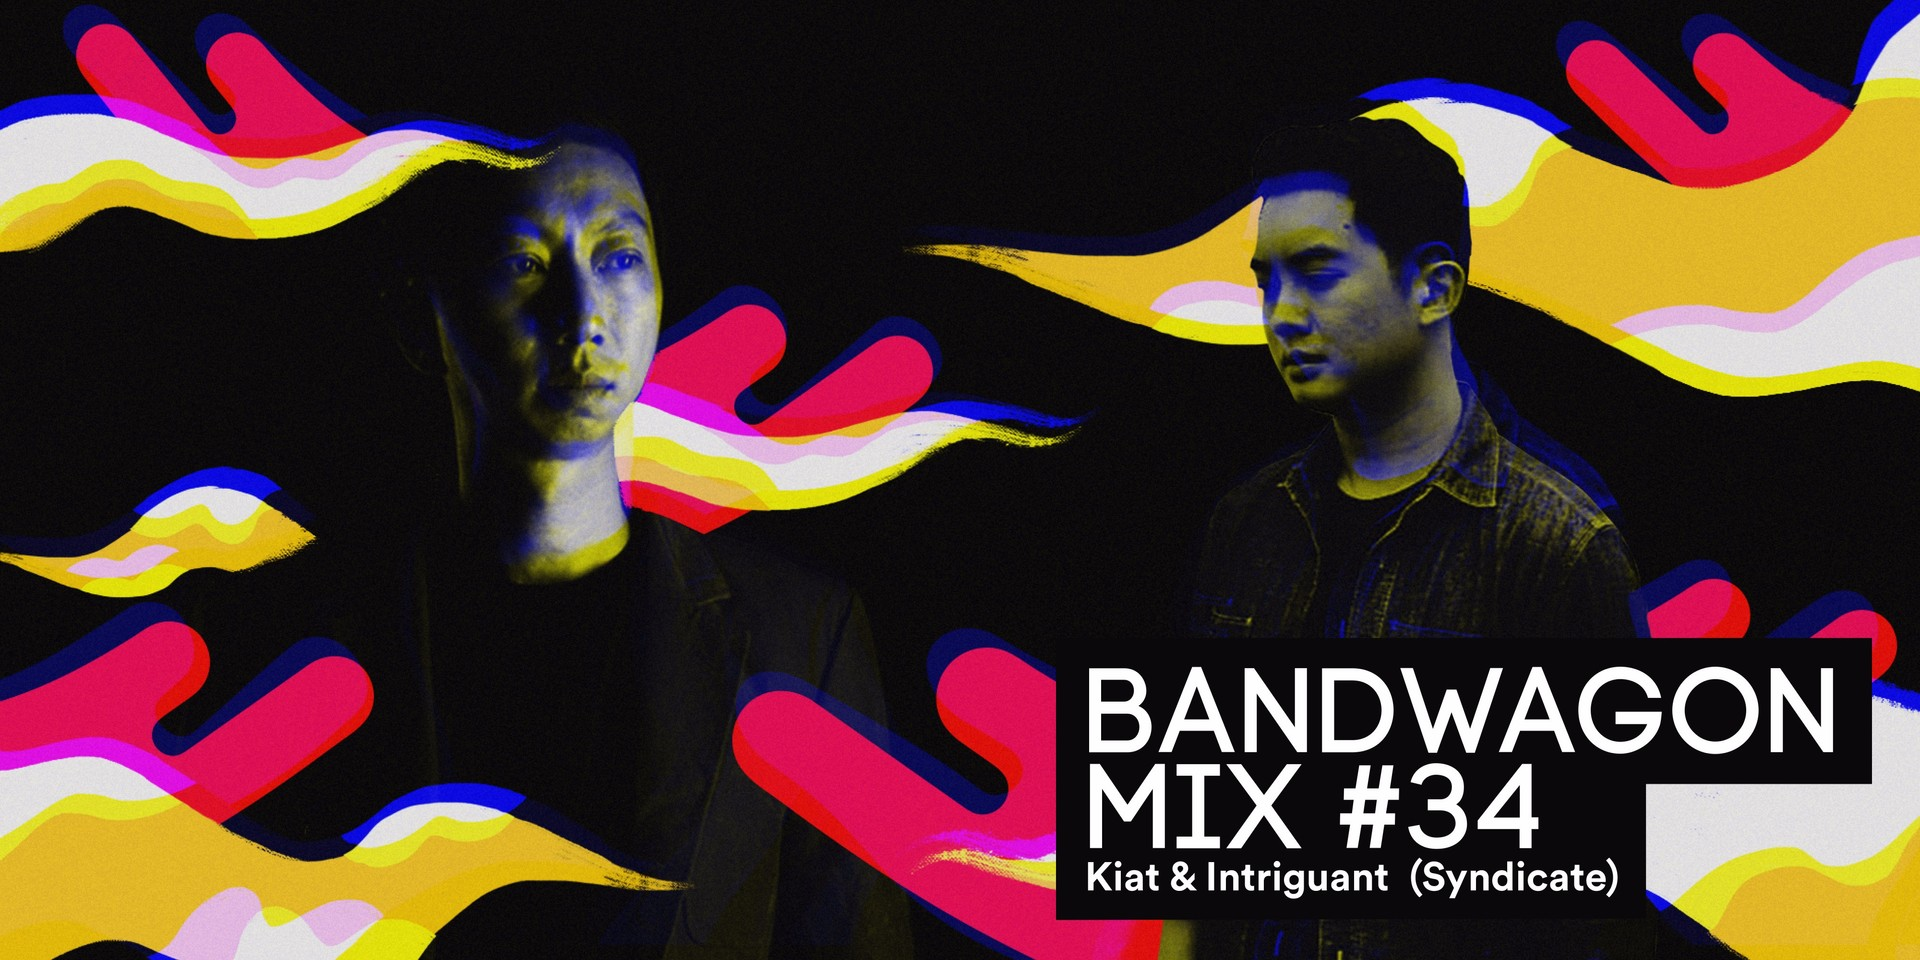 Bandwagon Mix #34: Kiat & Intriguant (Syndicate)